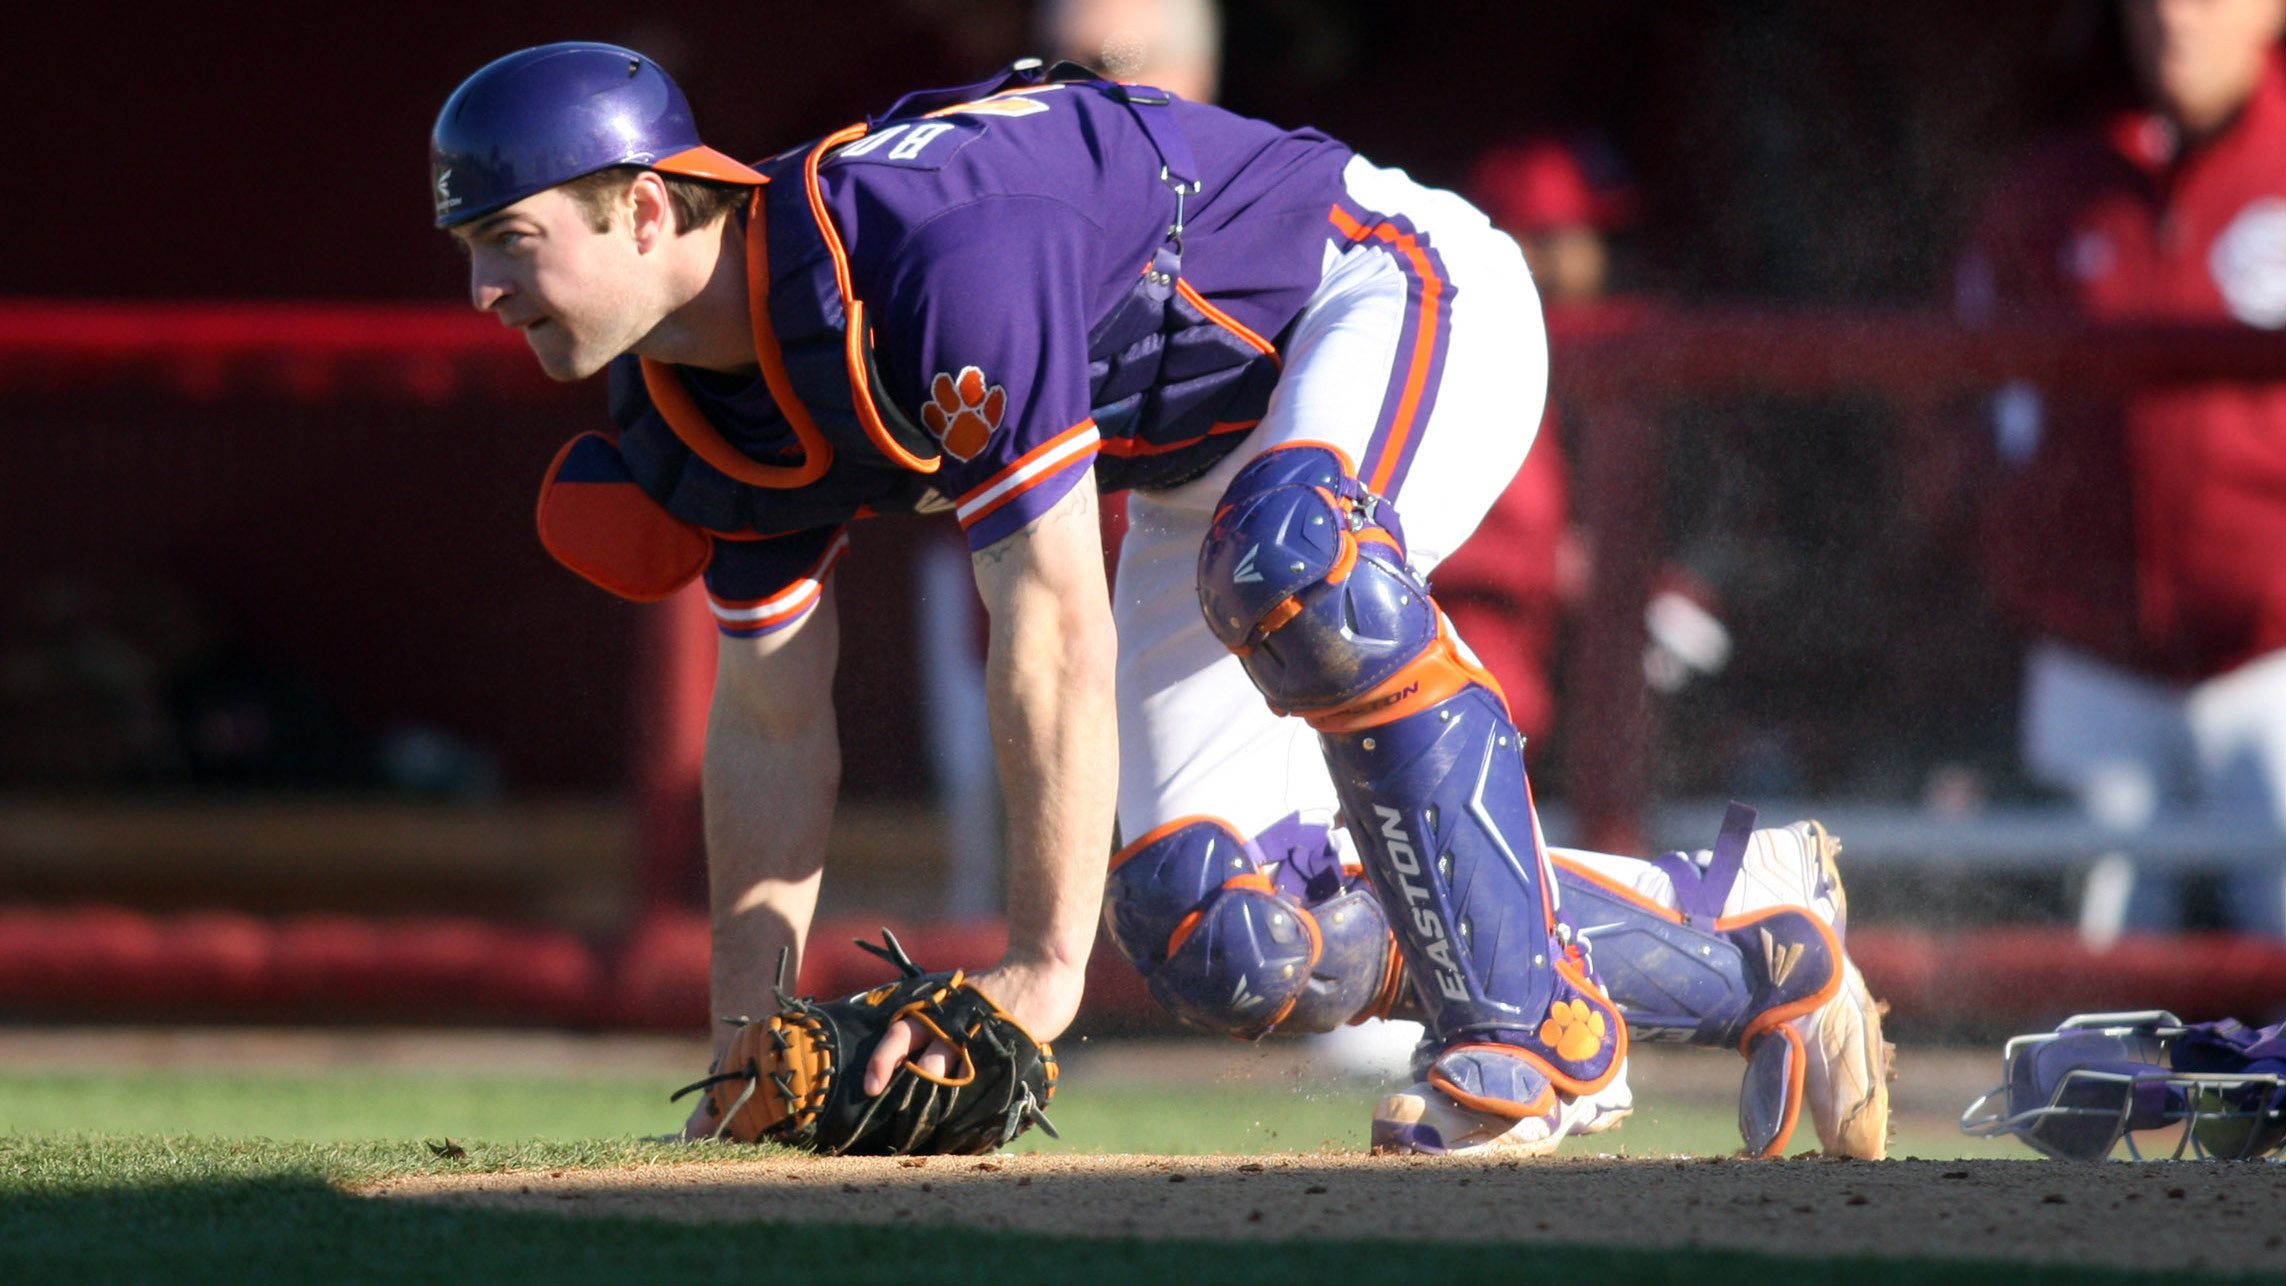 Boulware Added to Johnny Bench Award Watch List